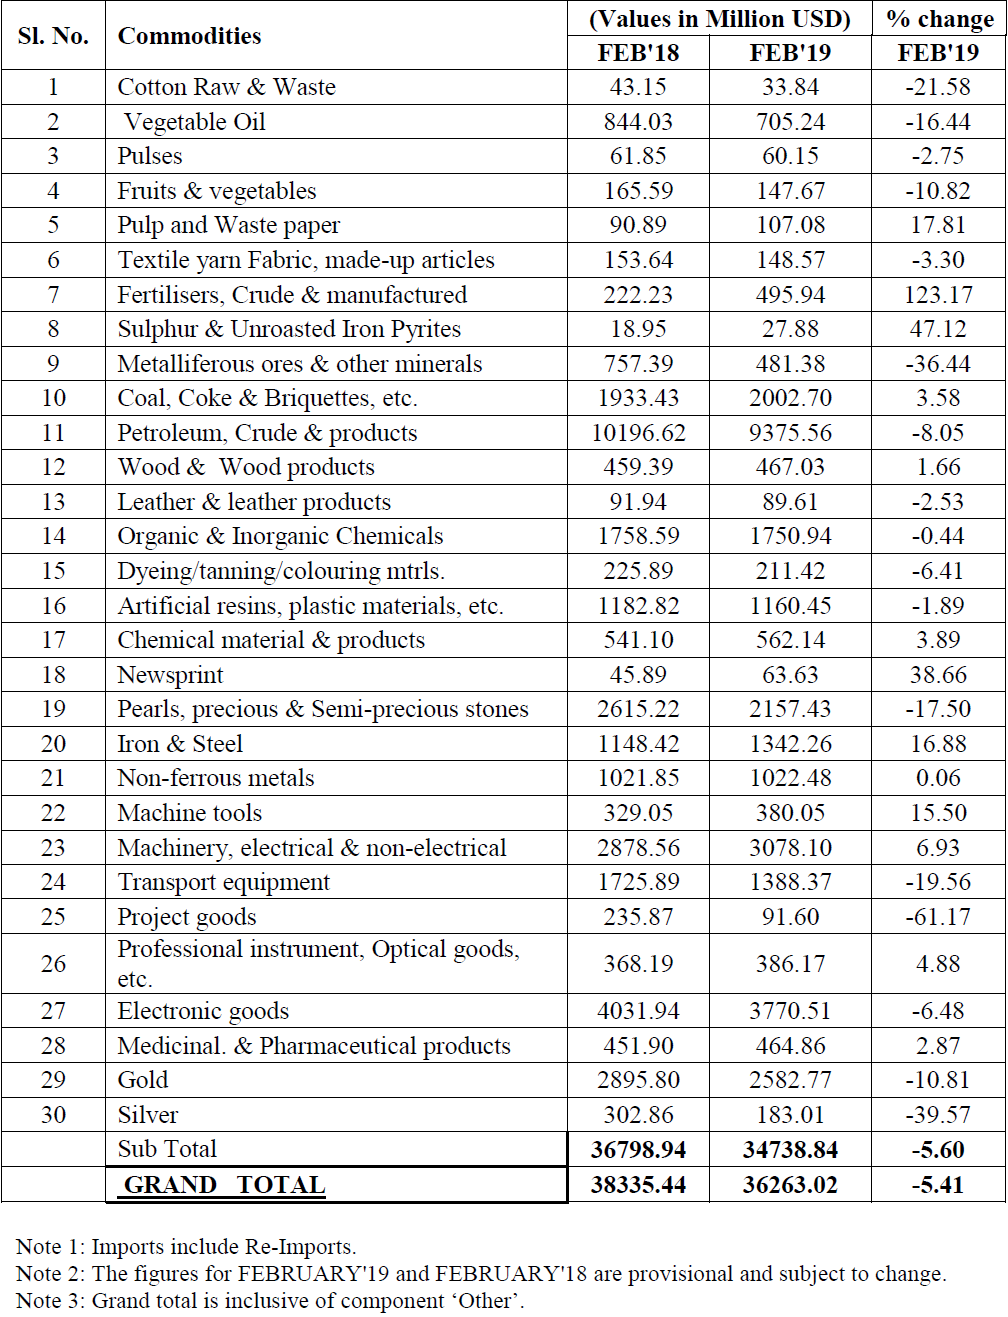 QUICK ESTIMATES FOR SELECTED MAJOR COMMODITIES FOR FEBRUARY 2019